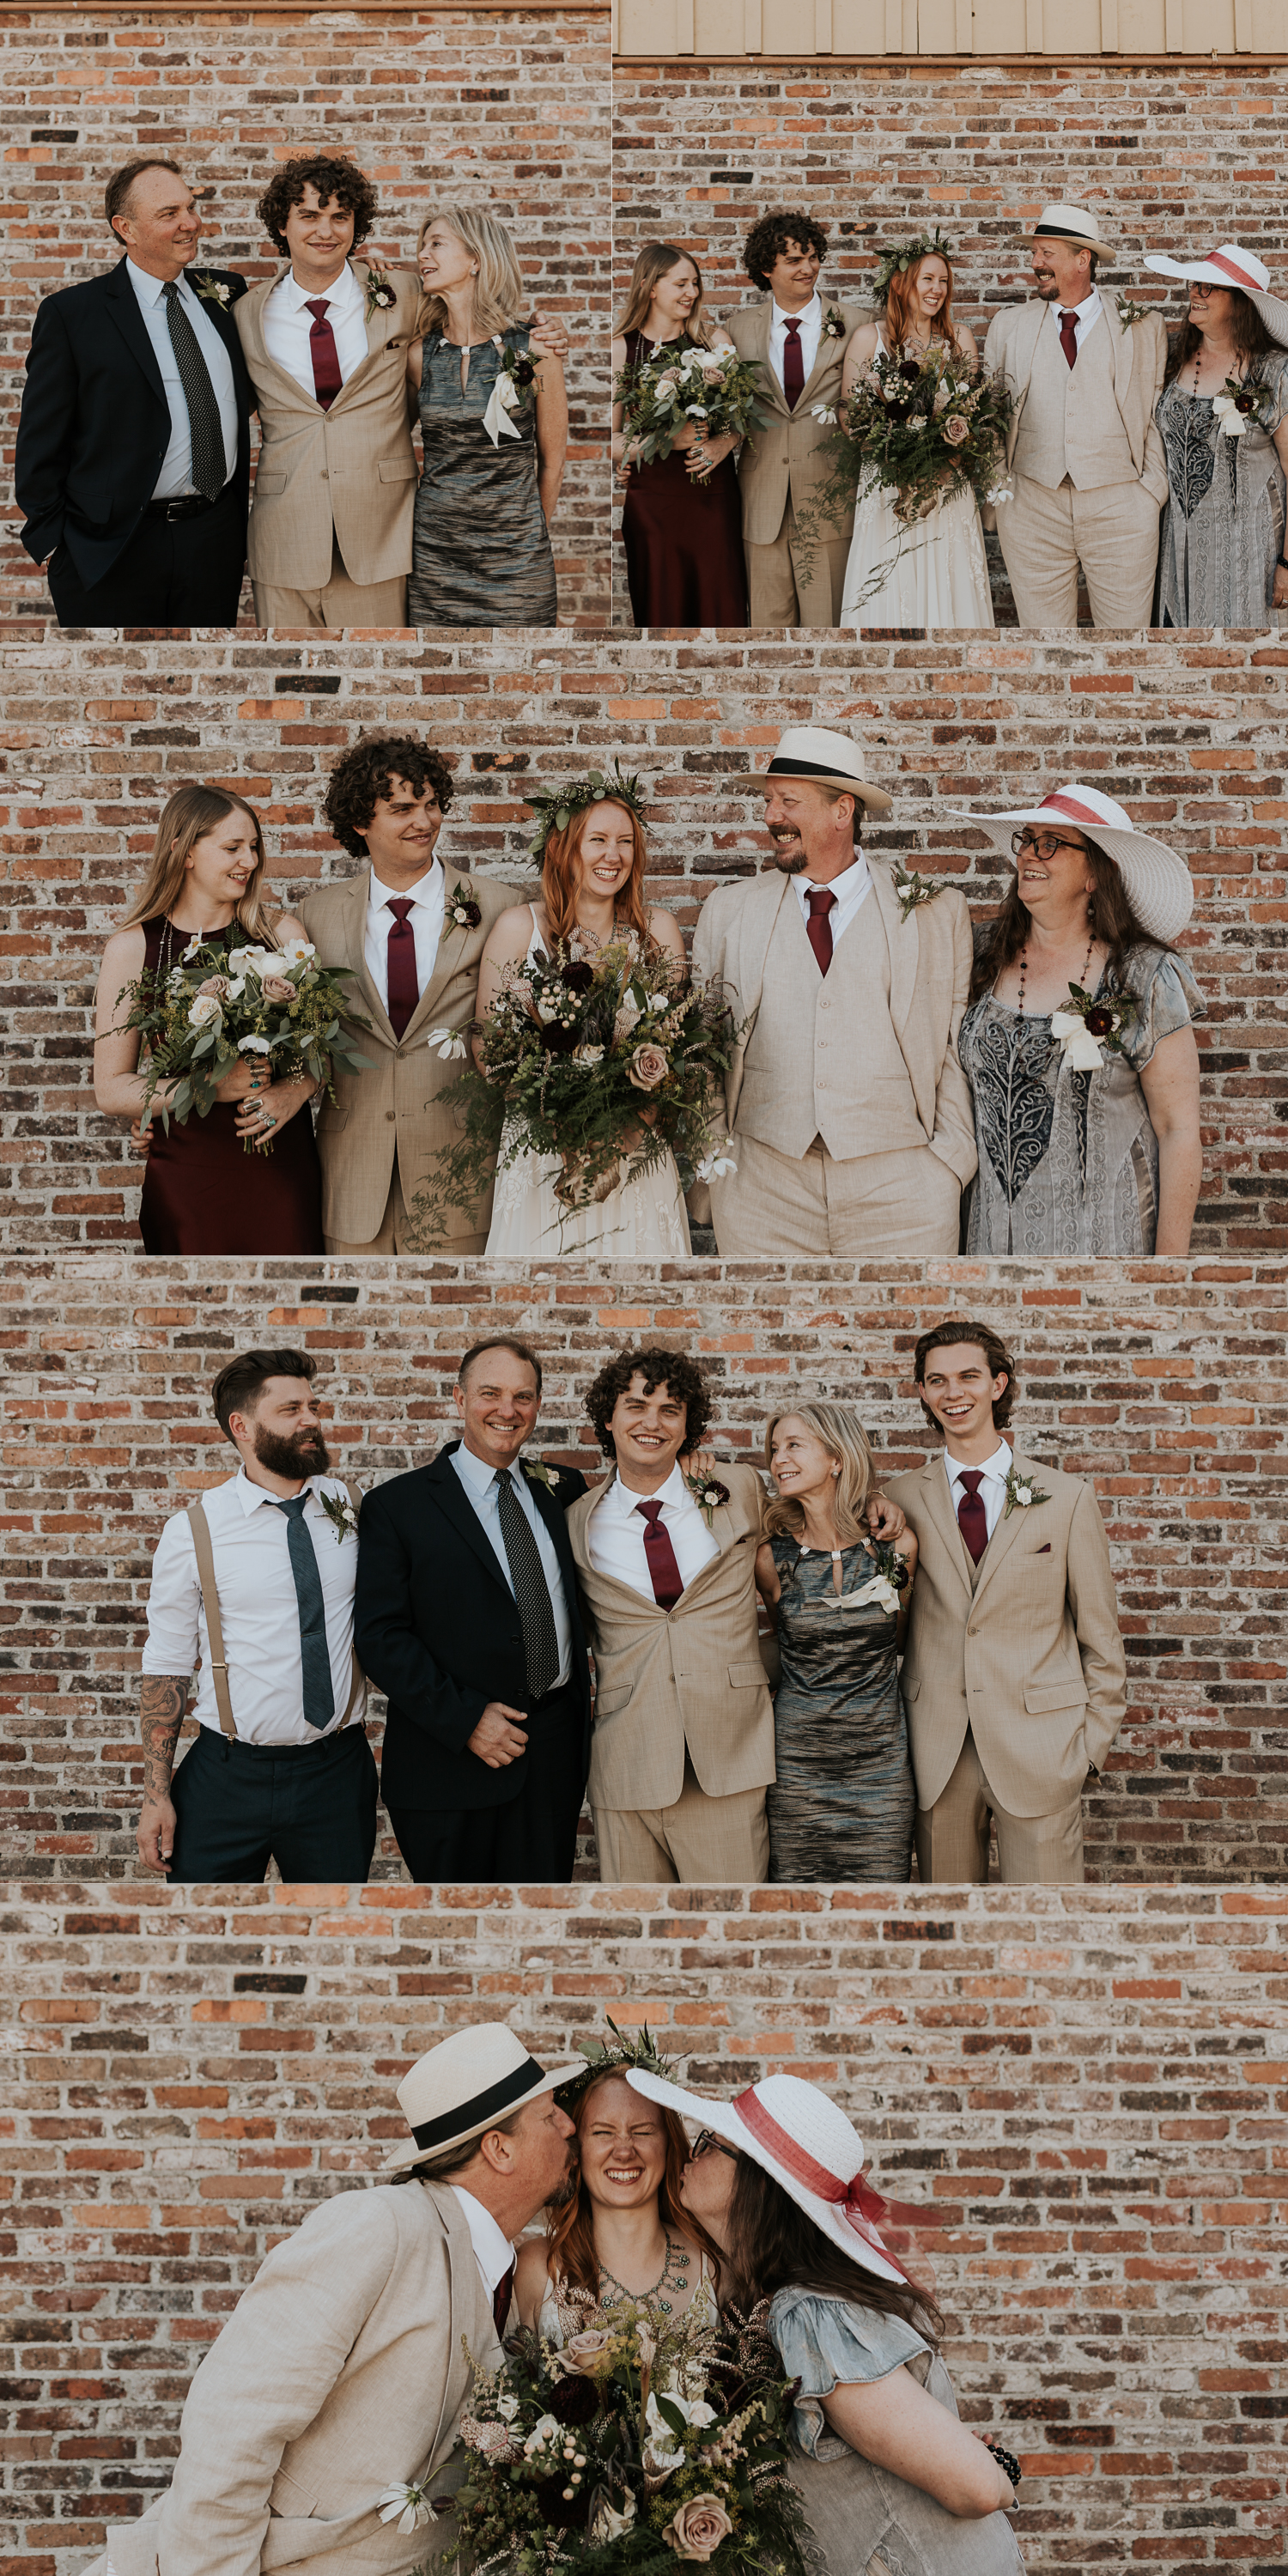 VillageGreenWedding15.jpg